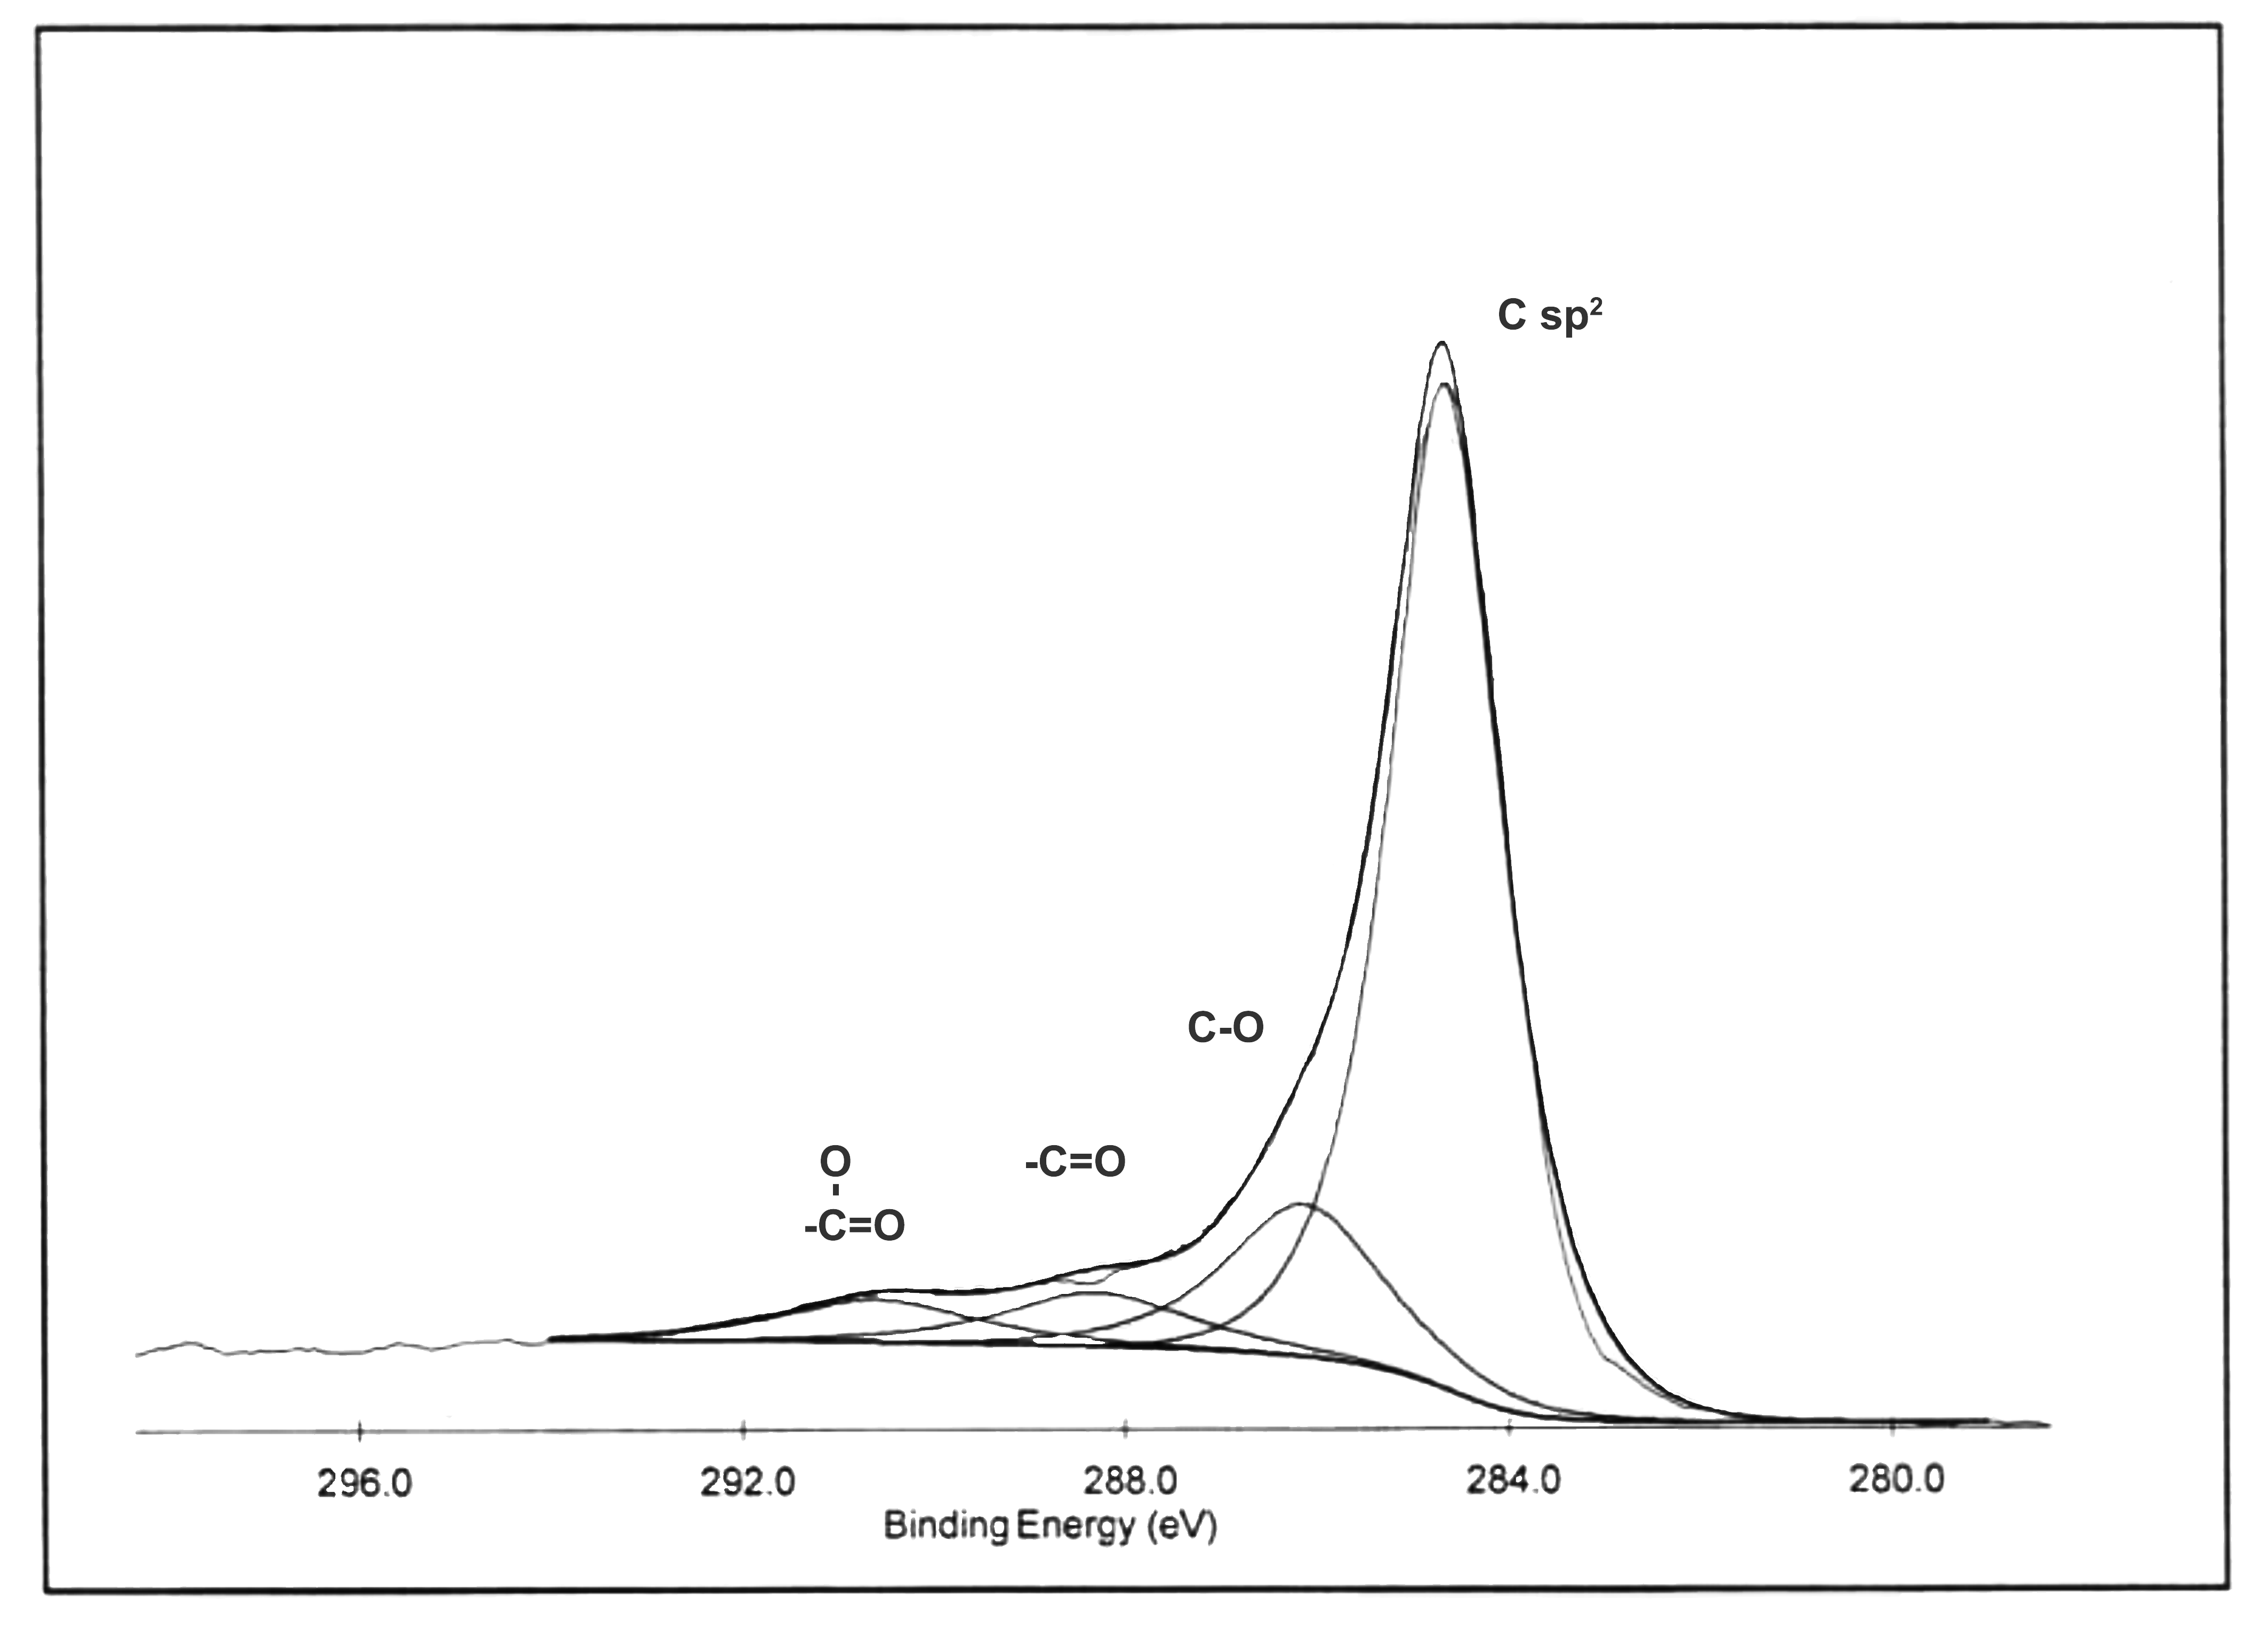 XPS C1s Spectrum of ACS Material Highly Purified SWCNTs-OH (Type B: Length = 5-30 μm)